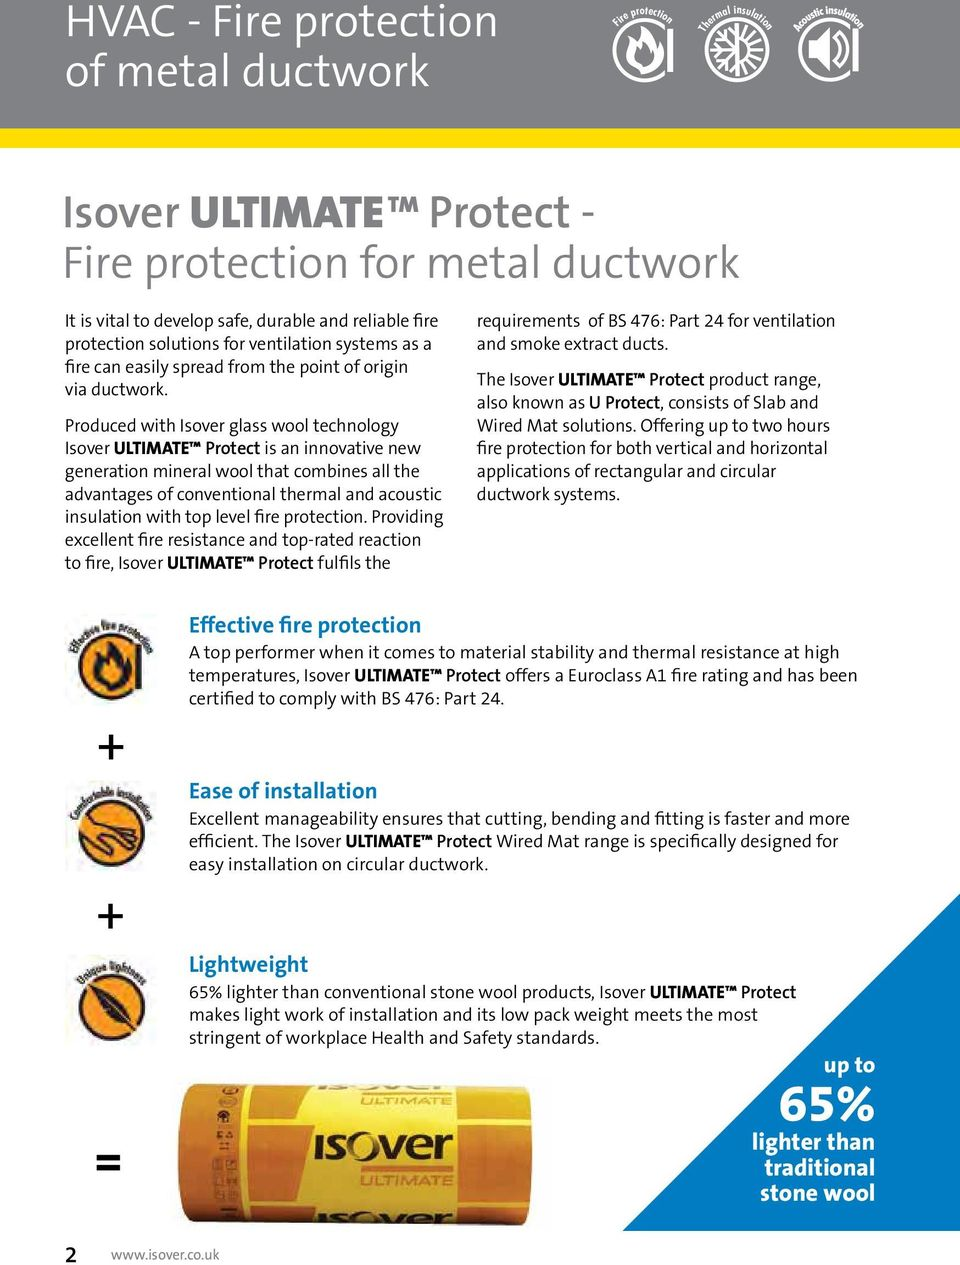 Produced with Isover glass wool technology Isover Ultimate Protect is an innovative new generation mineral wool that combines all the advantages of conventional thermal and acoustic insulation with